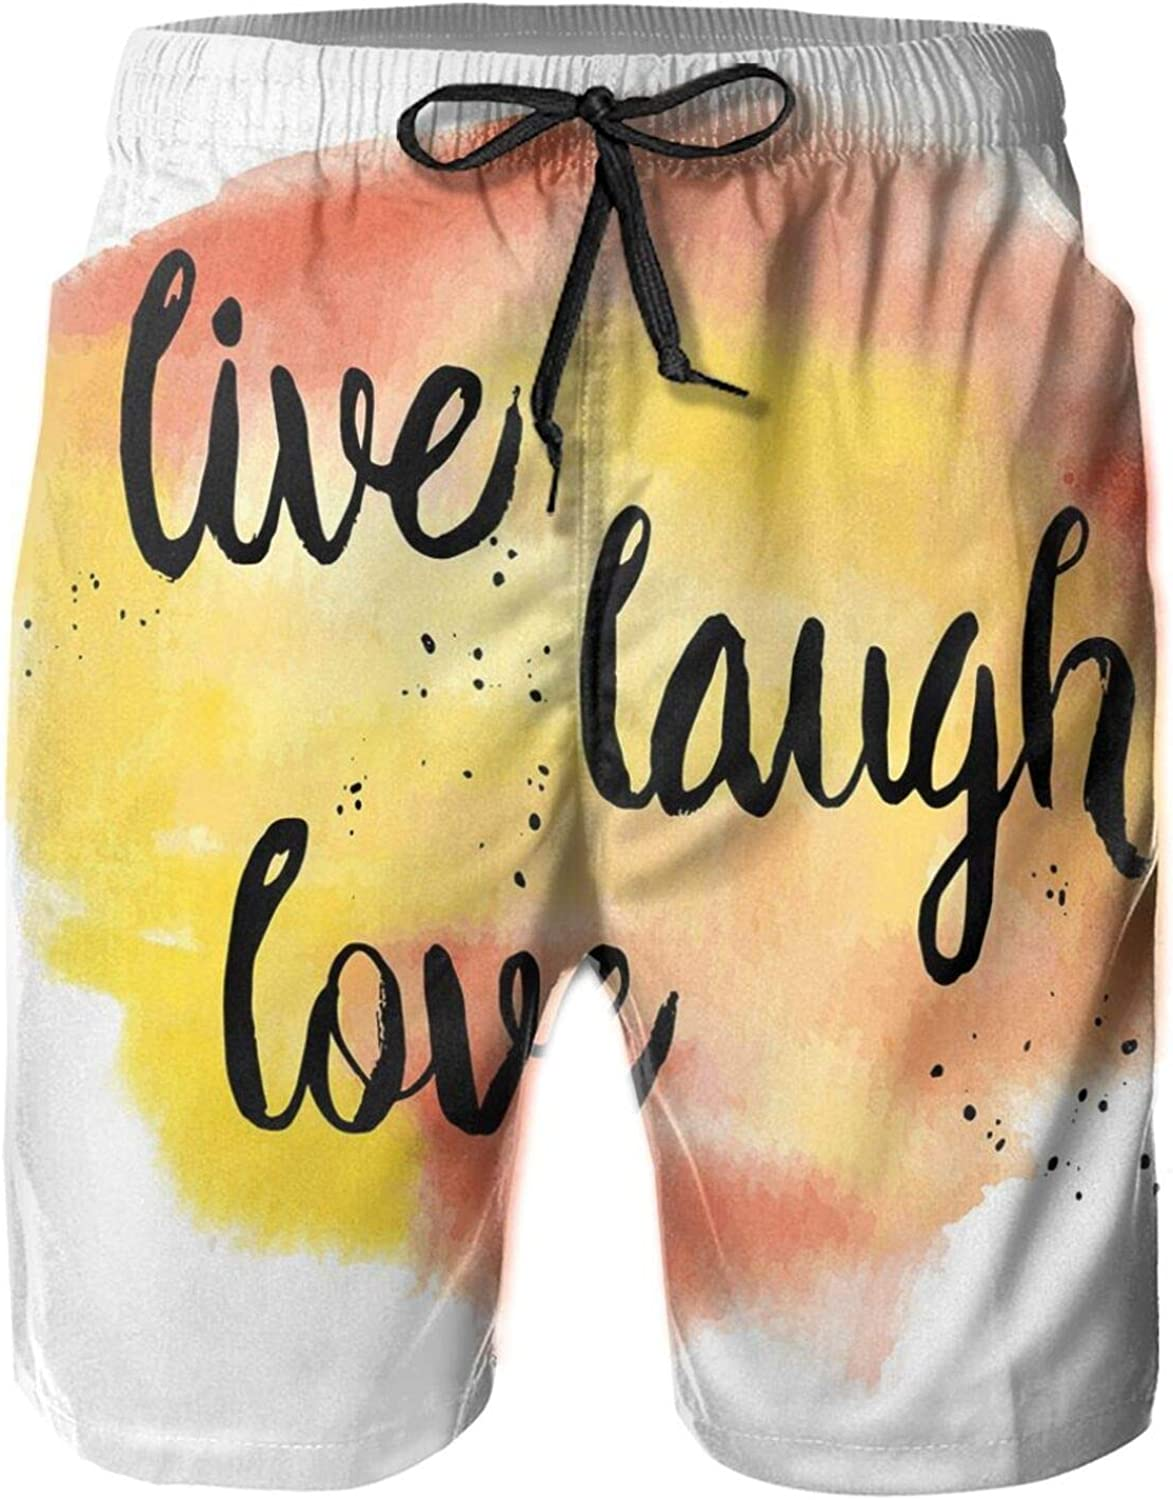 Ink Painted Lettering On Soft Watercolors Inspiration Artwork Mens Swim Shorts Casual Workout Short Pants Drawstring Beach Shorts,XXL